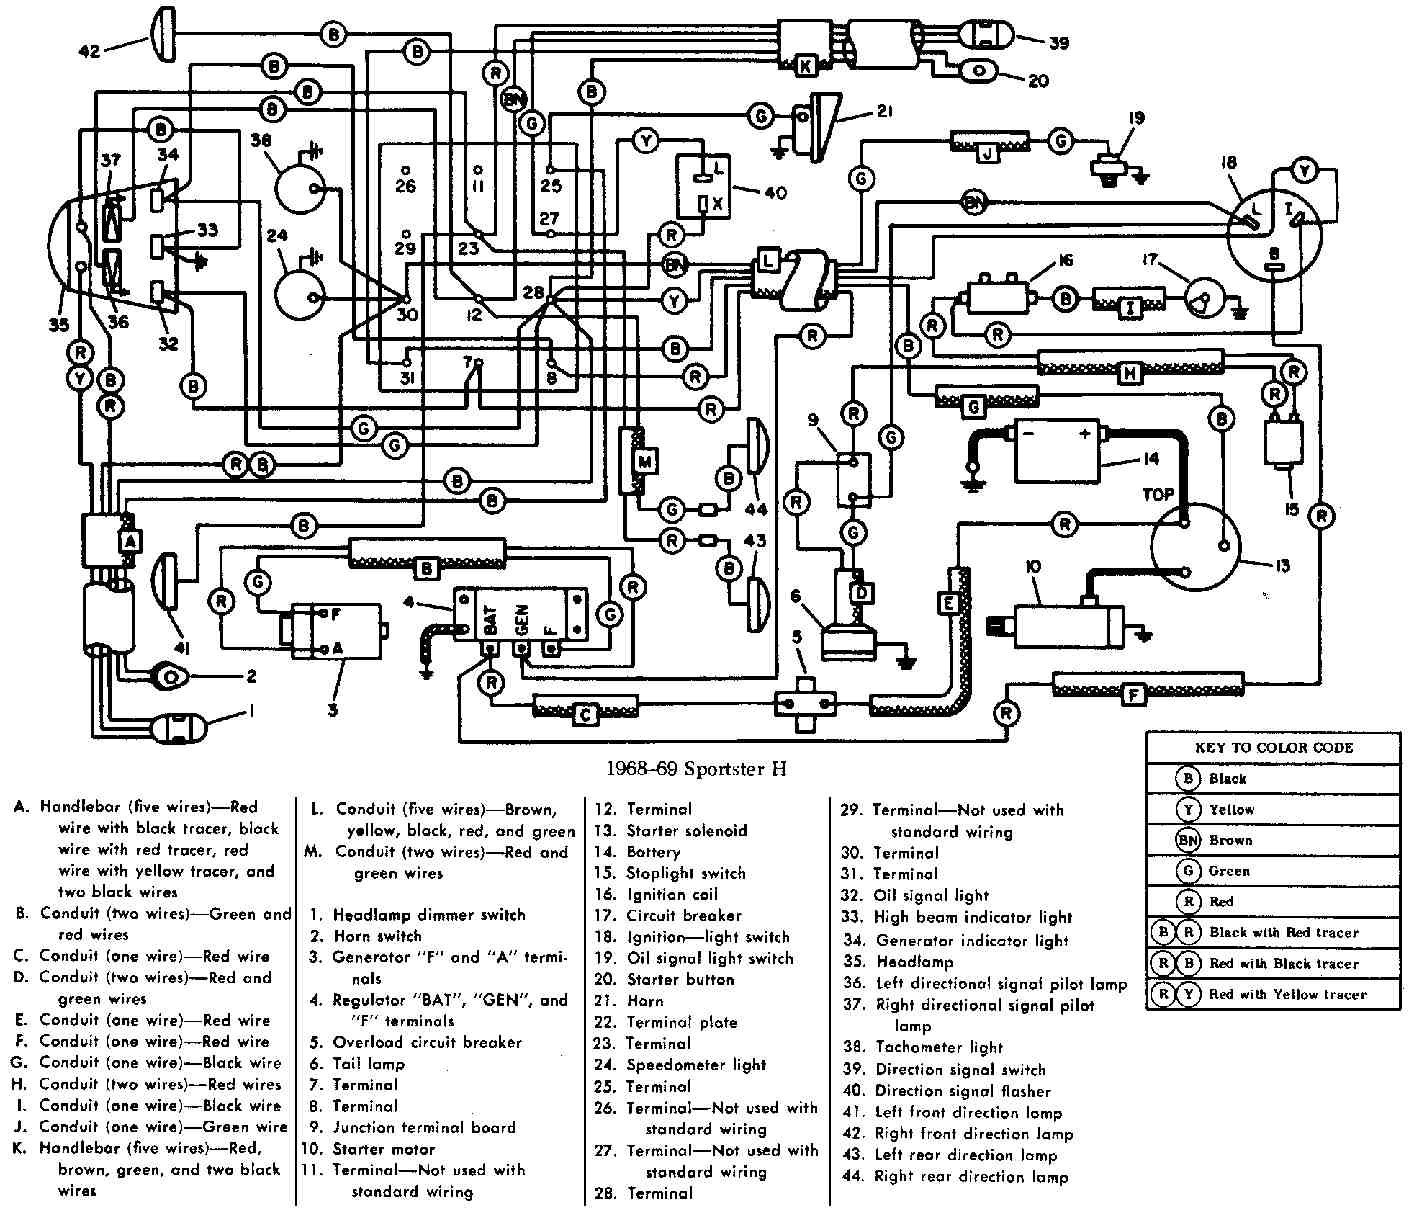 harley davidson 1977 sportster wiring diagram smart wiring diagrams u2022 rh krakencraft co Harley Wiring Harness Diagram 2004 2007 Harley Davidson Wiring Schematics and Diagrams